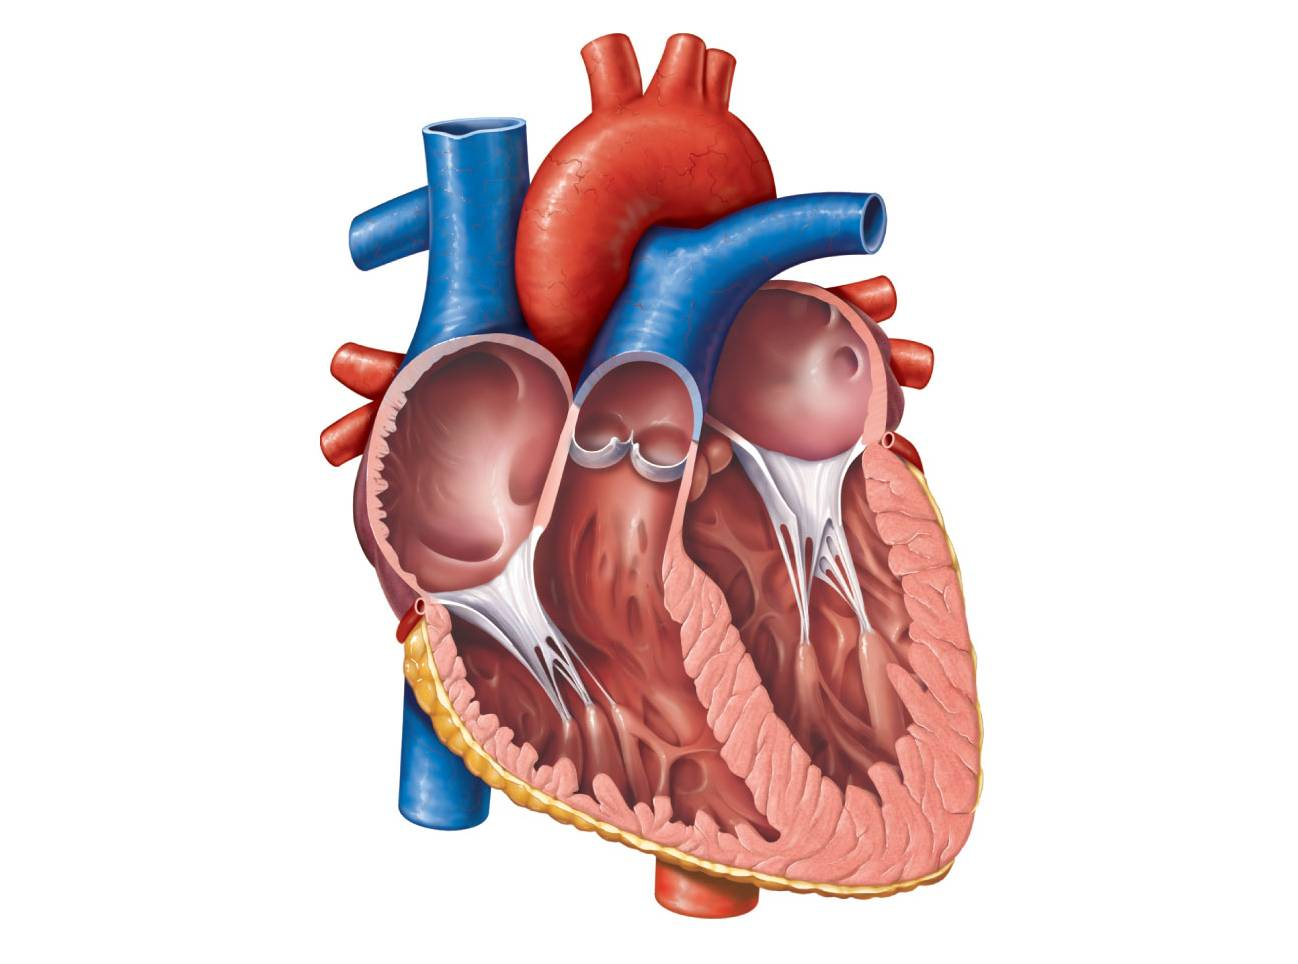 Human Organs Clipart at GetDrawings.com | Free for personal use ...